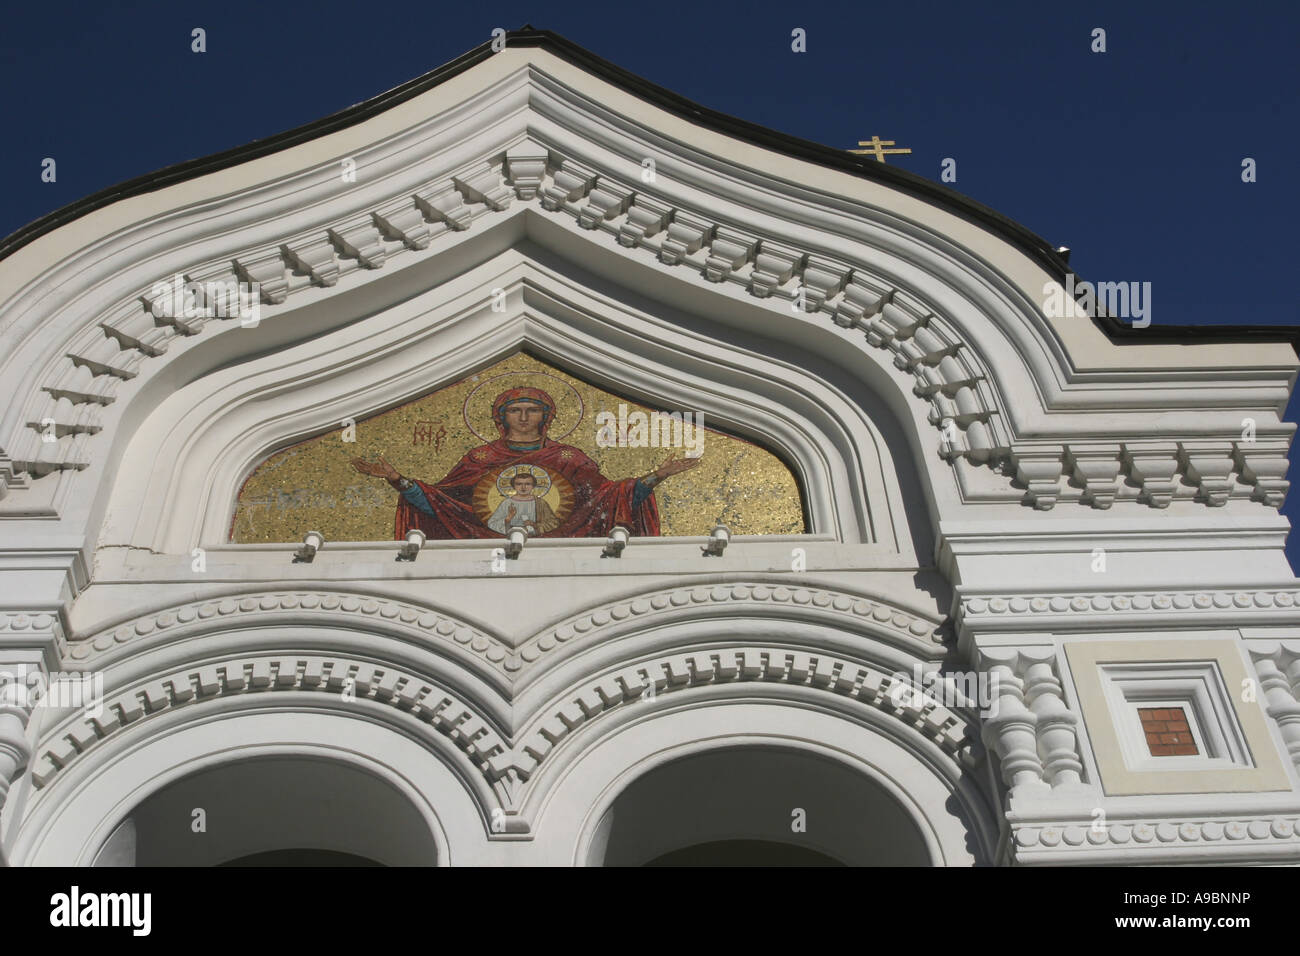 ESTONIA - the Alexander Nevski Cathedral in the capital Tallin - Stock Image